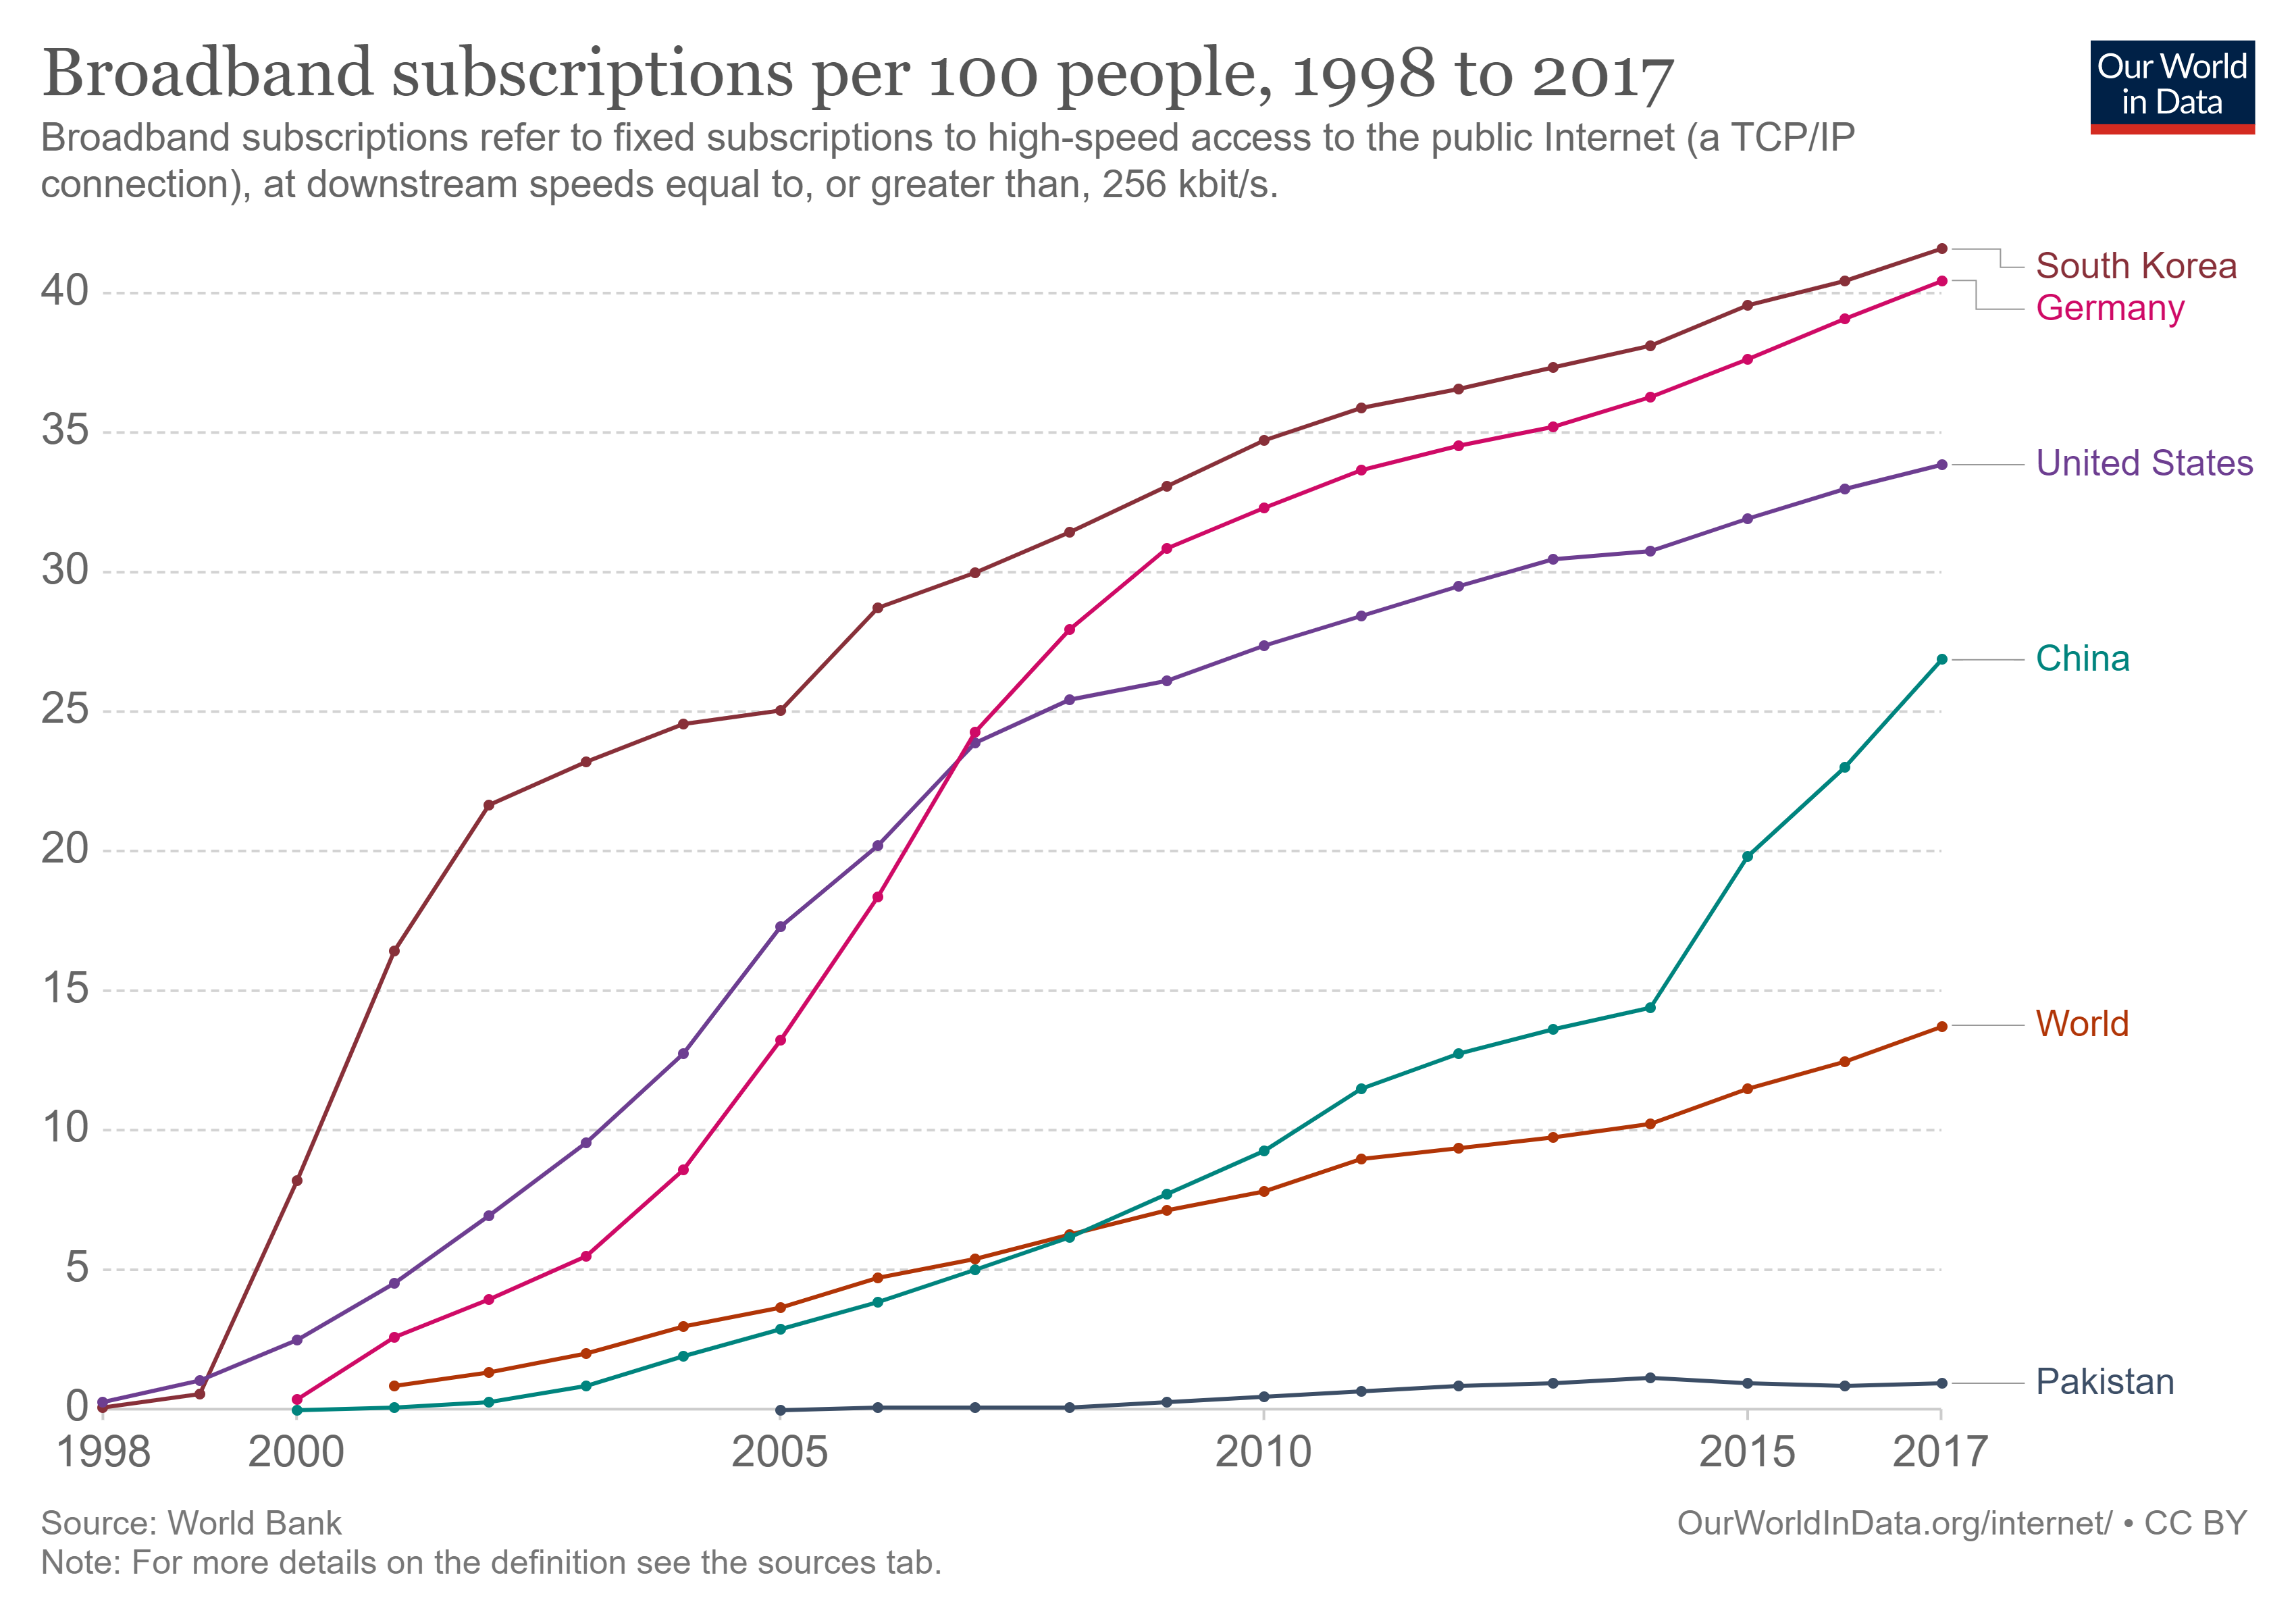 Growth in broadband subscriptions